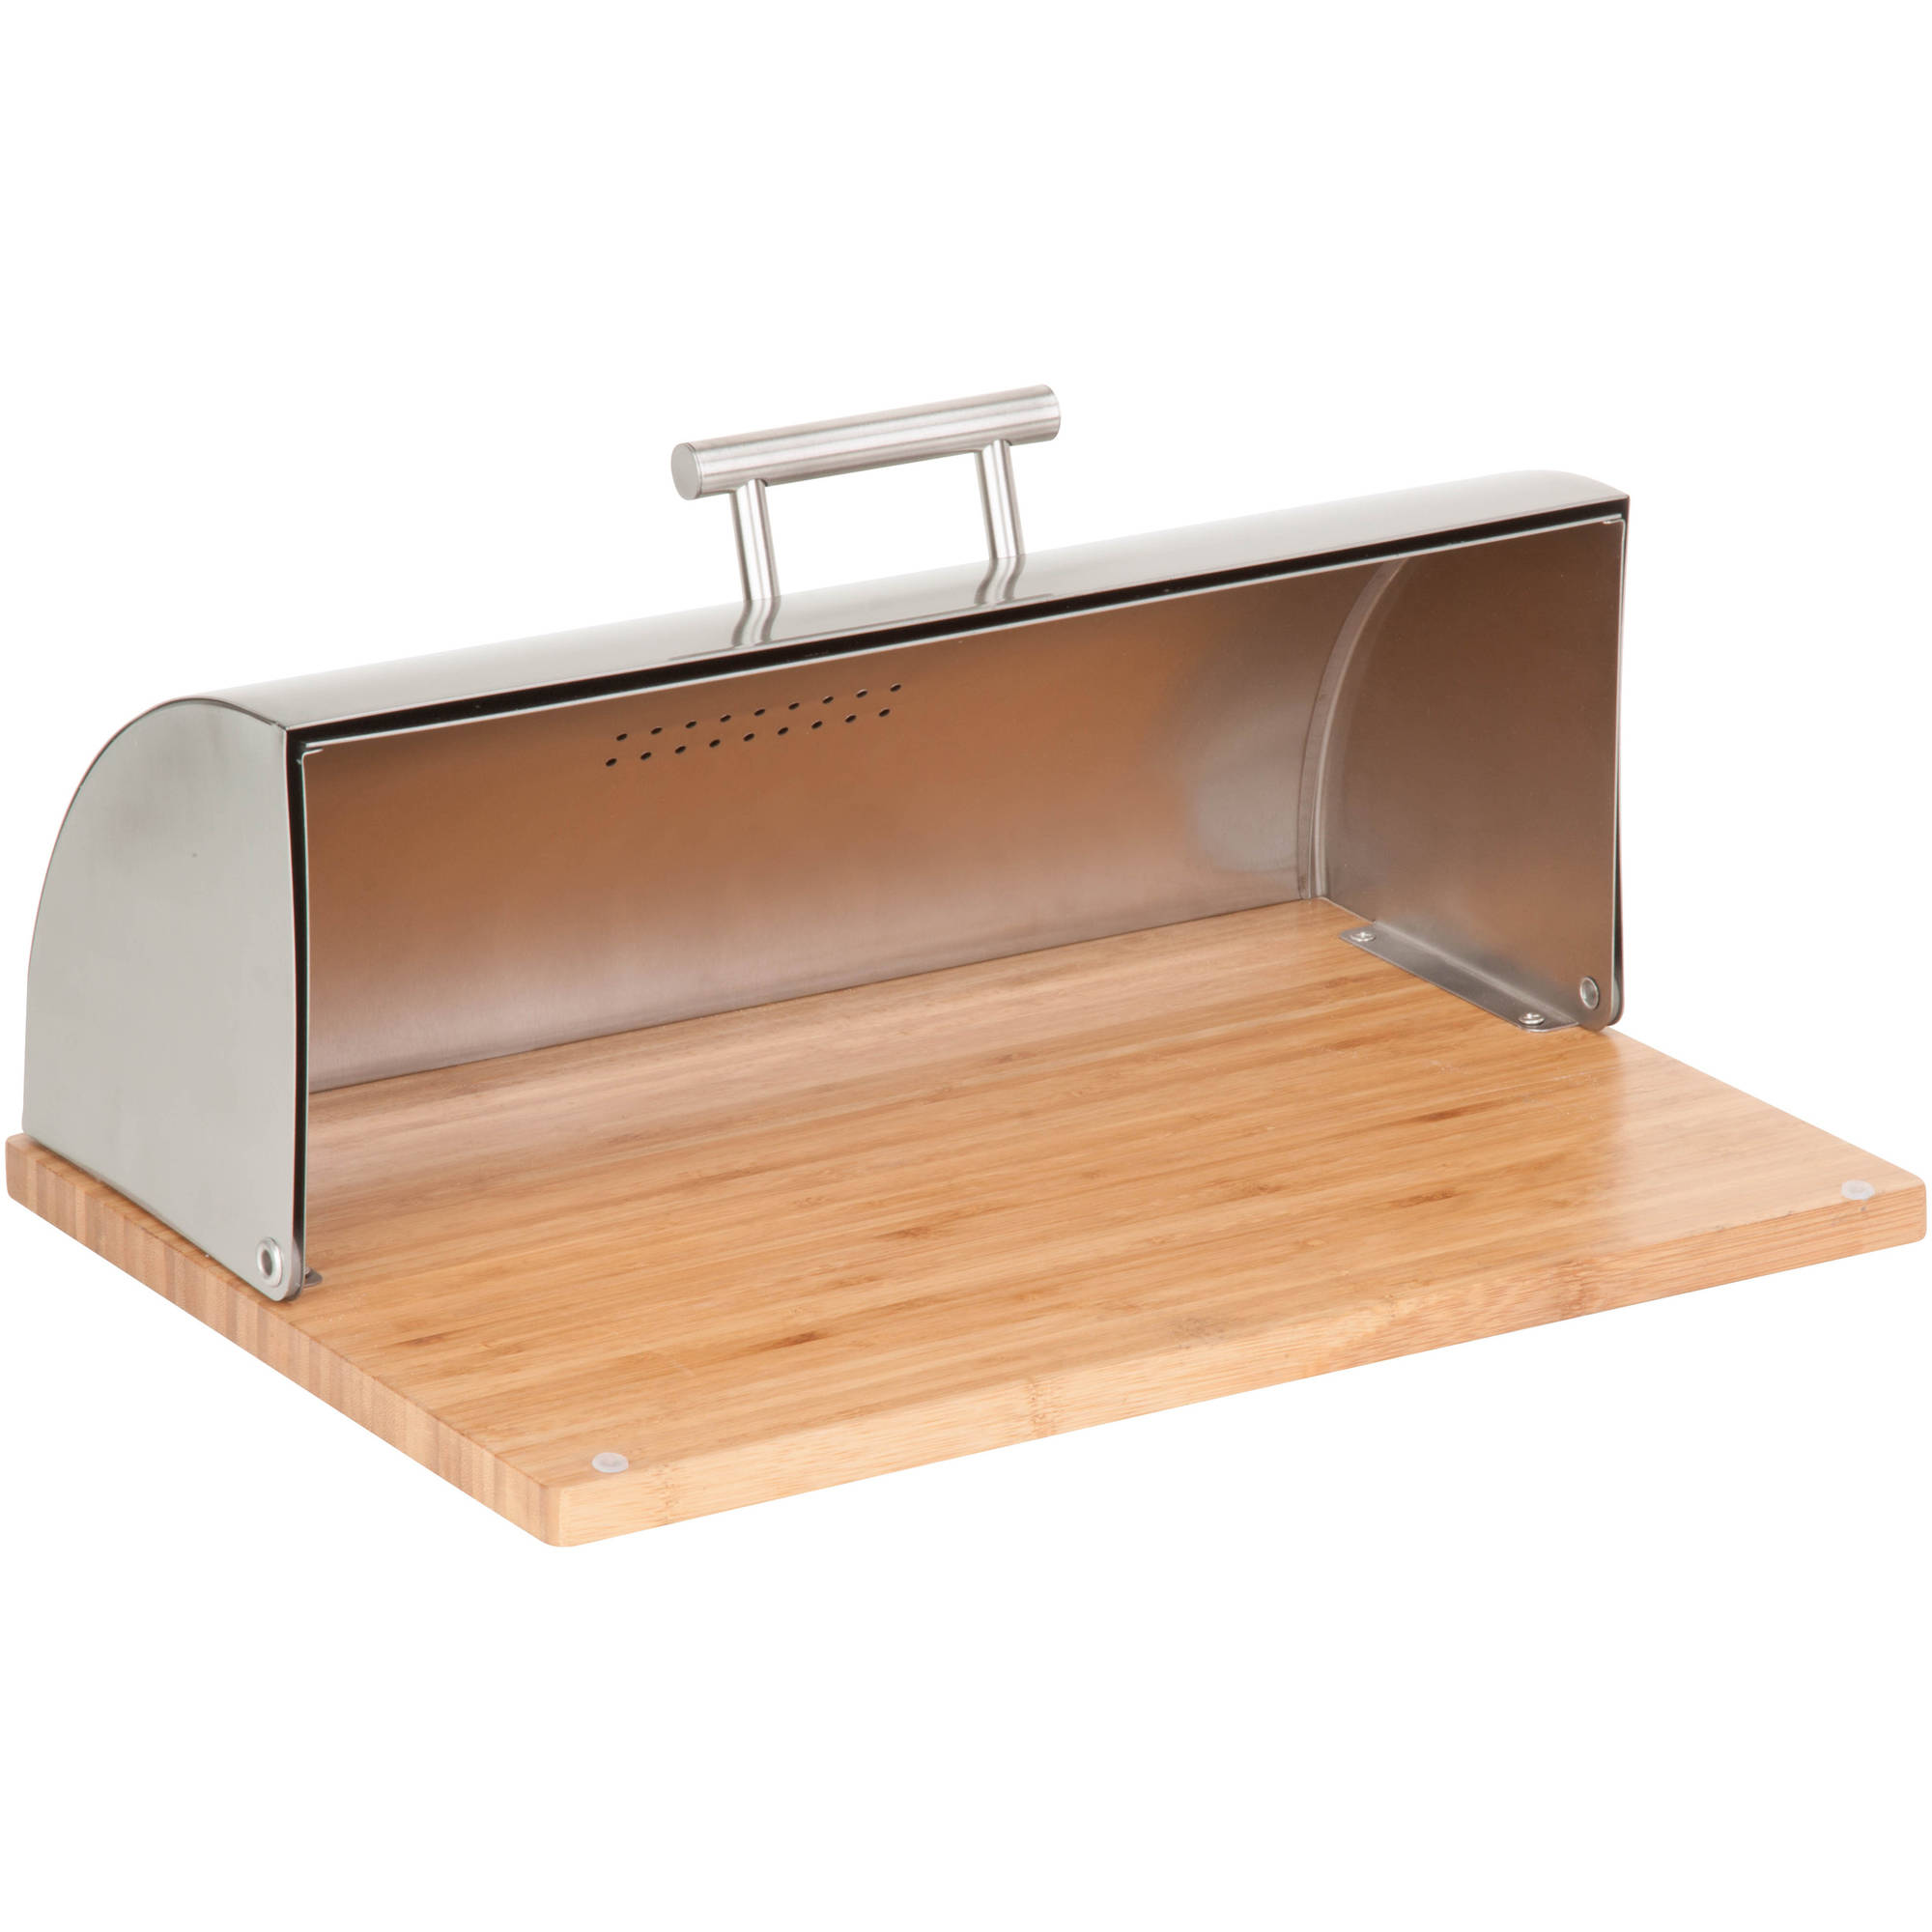 Better Homes And Gardens Stainless Steel Bread Box Walmartcom